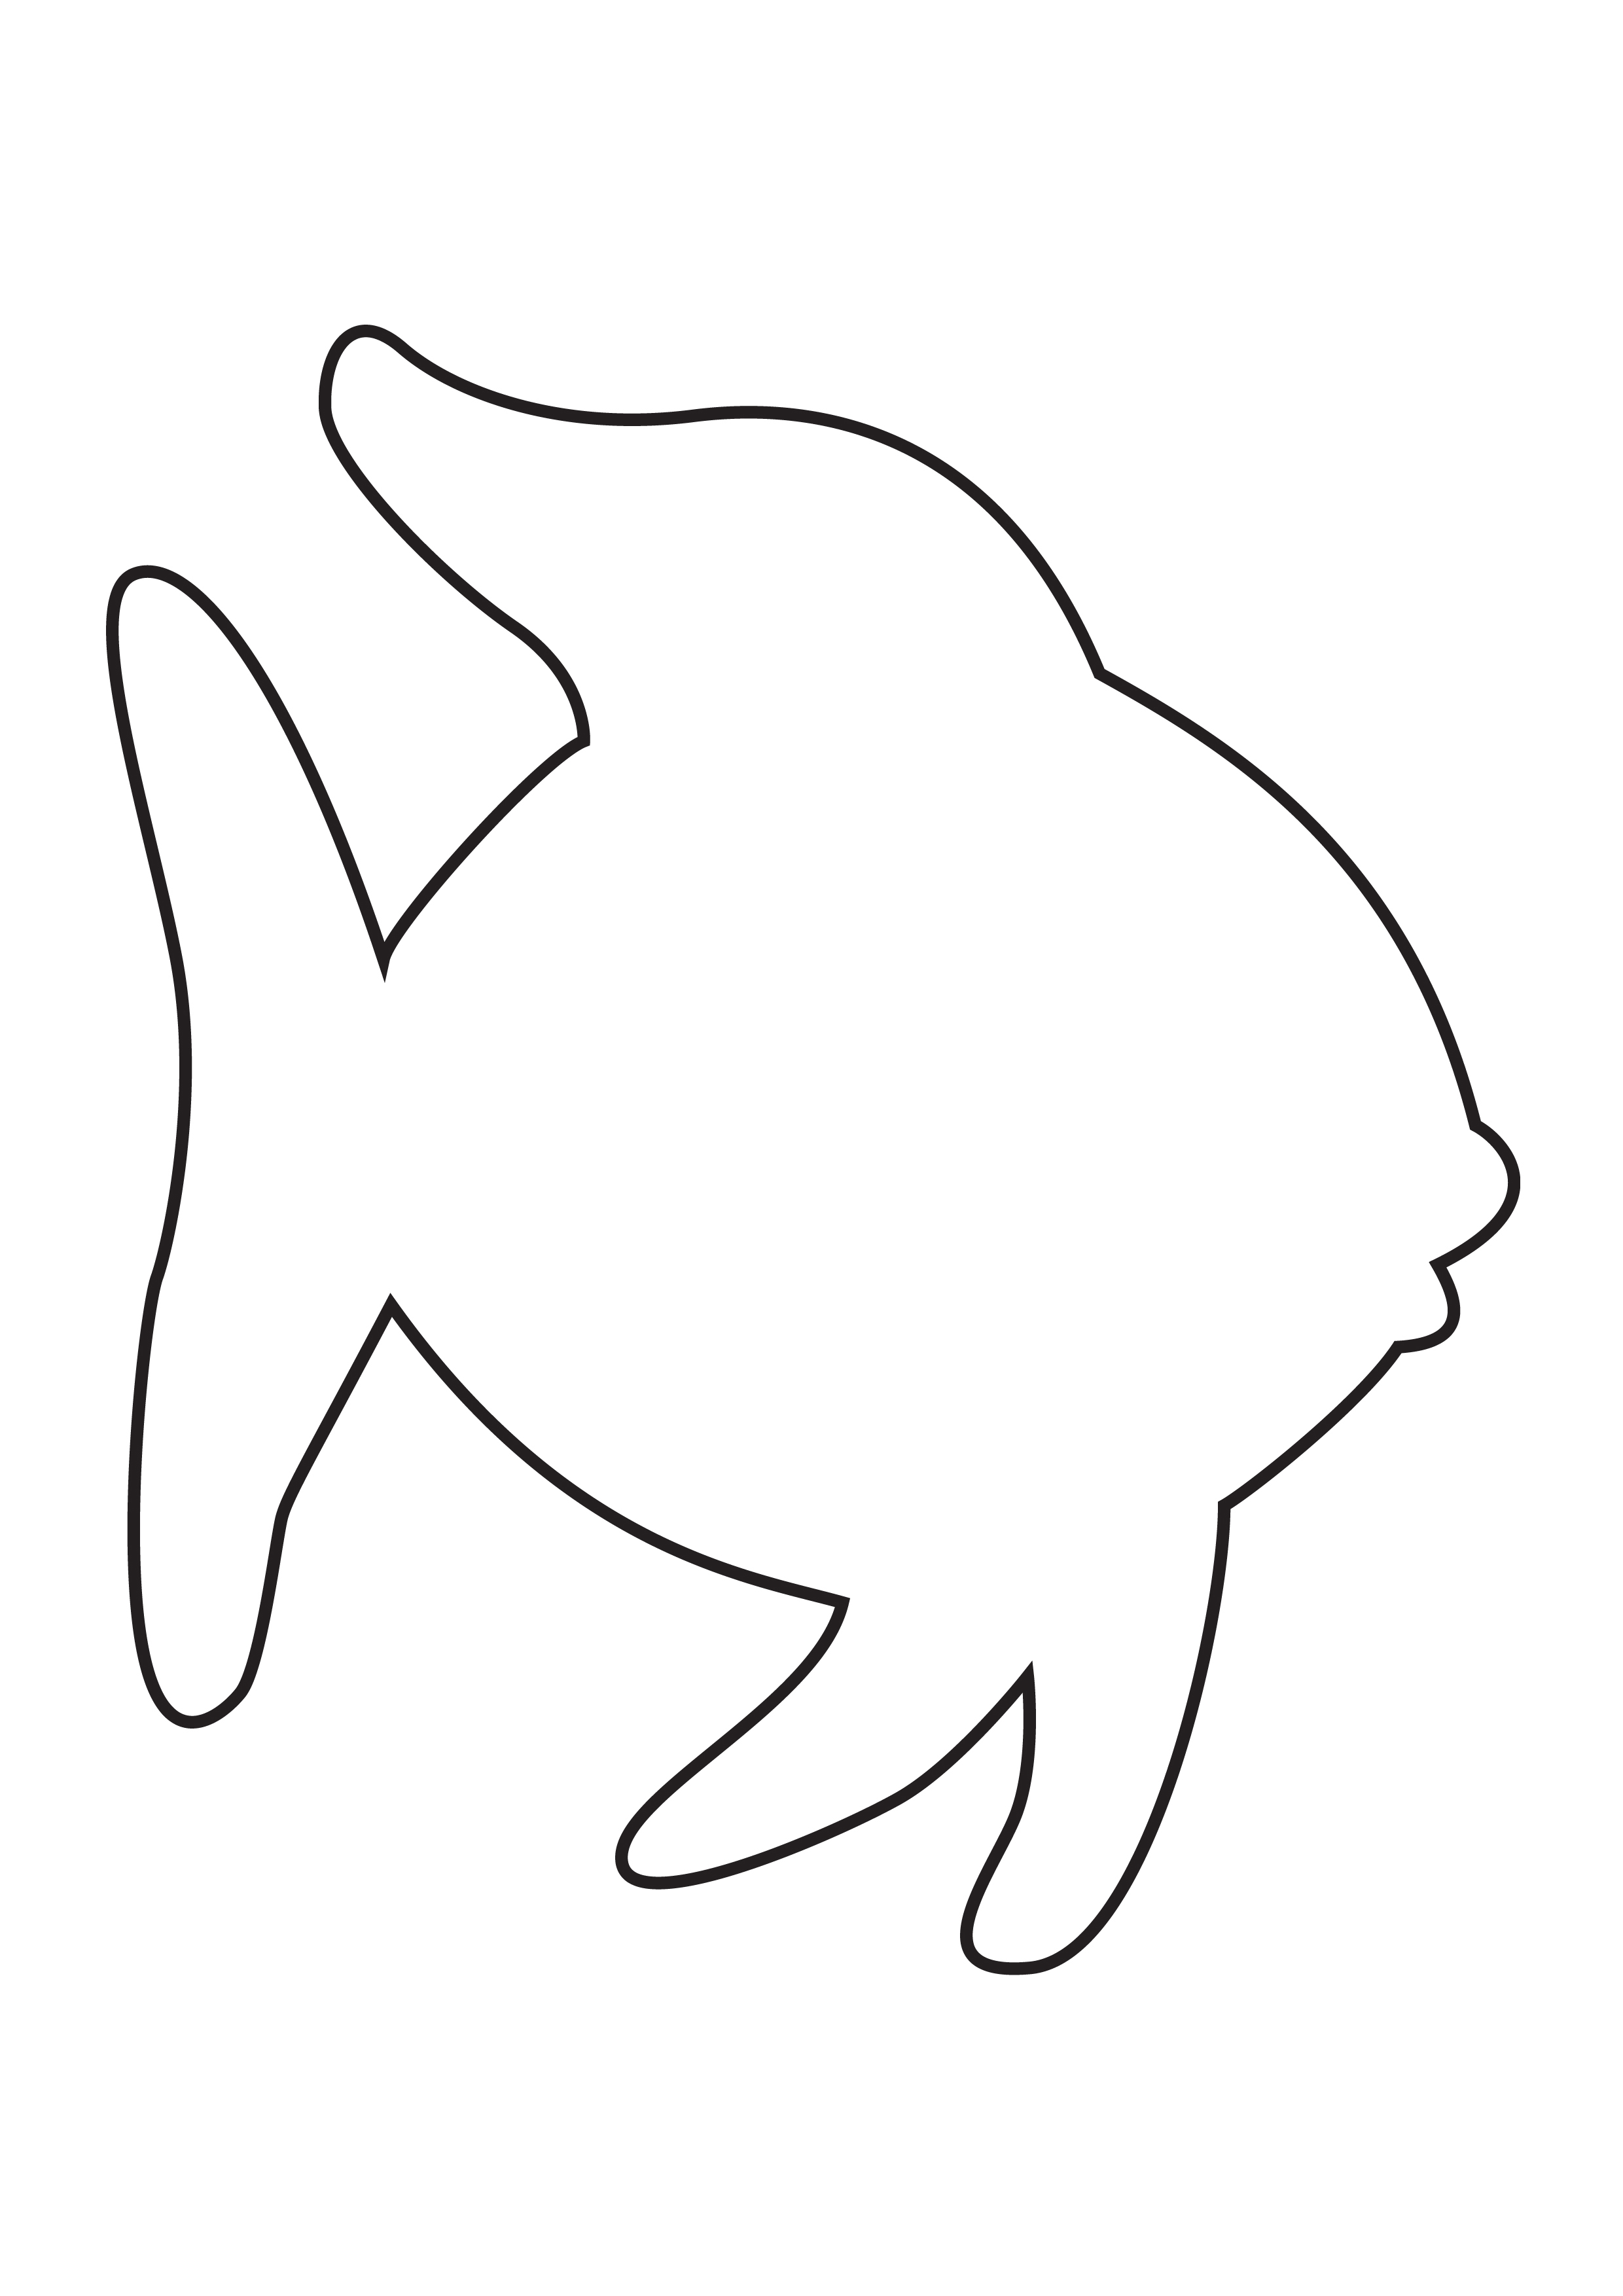 Fish outline clipart clipartfest 2